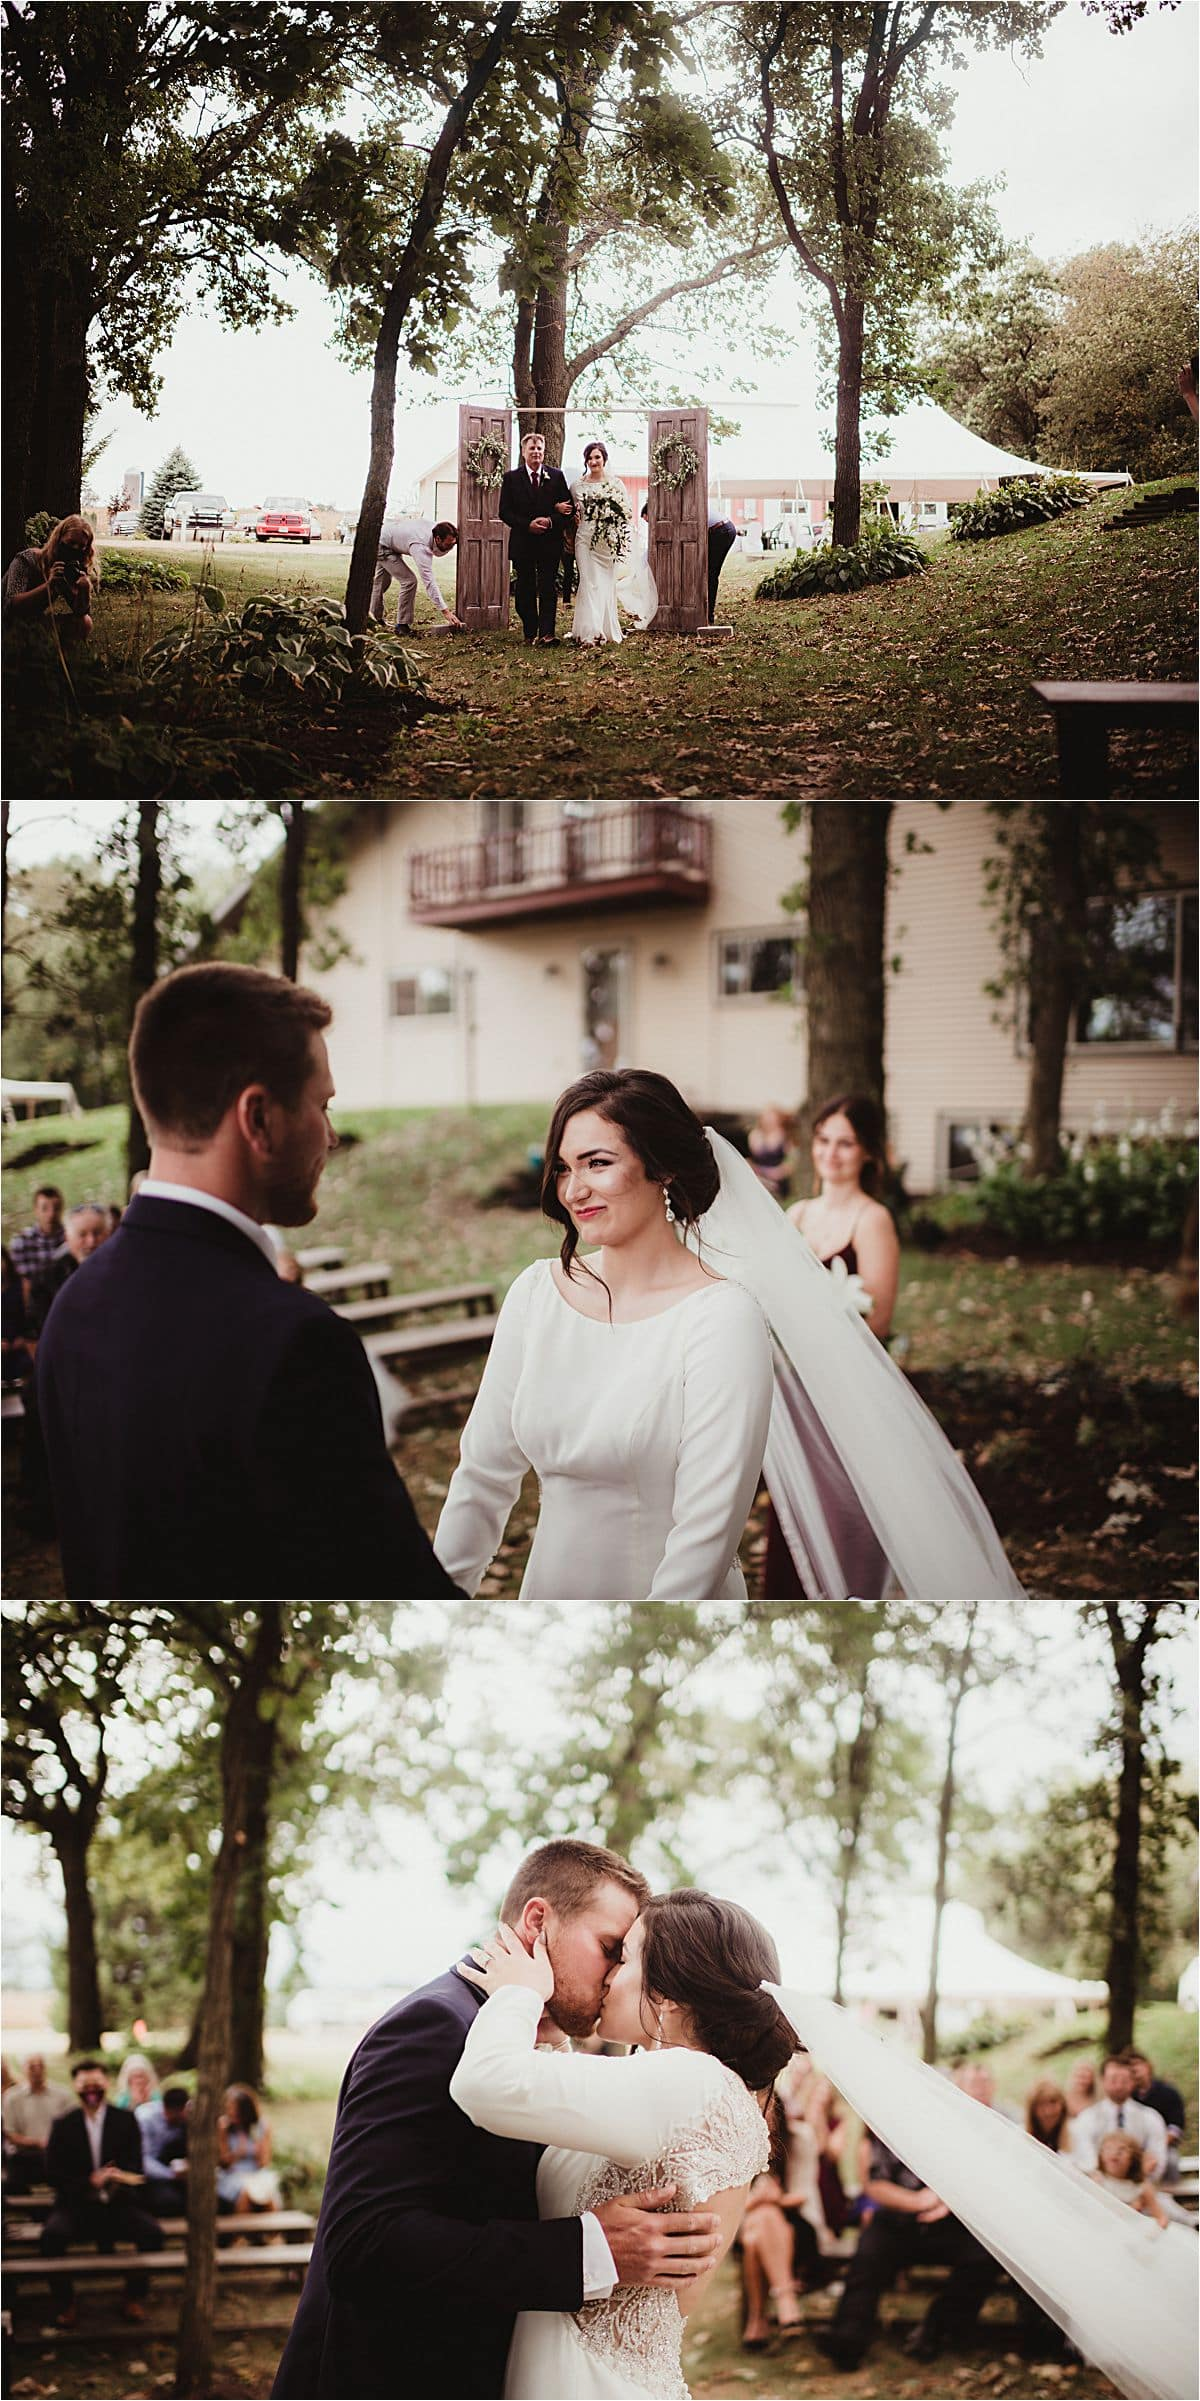 Private Residence Summer Wedding Outdoor Wedding Ceremony